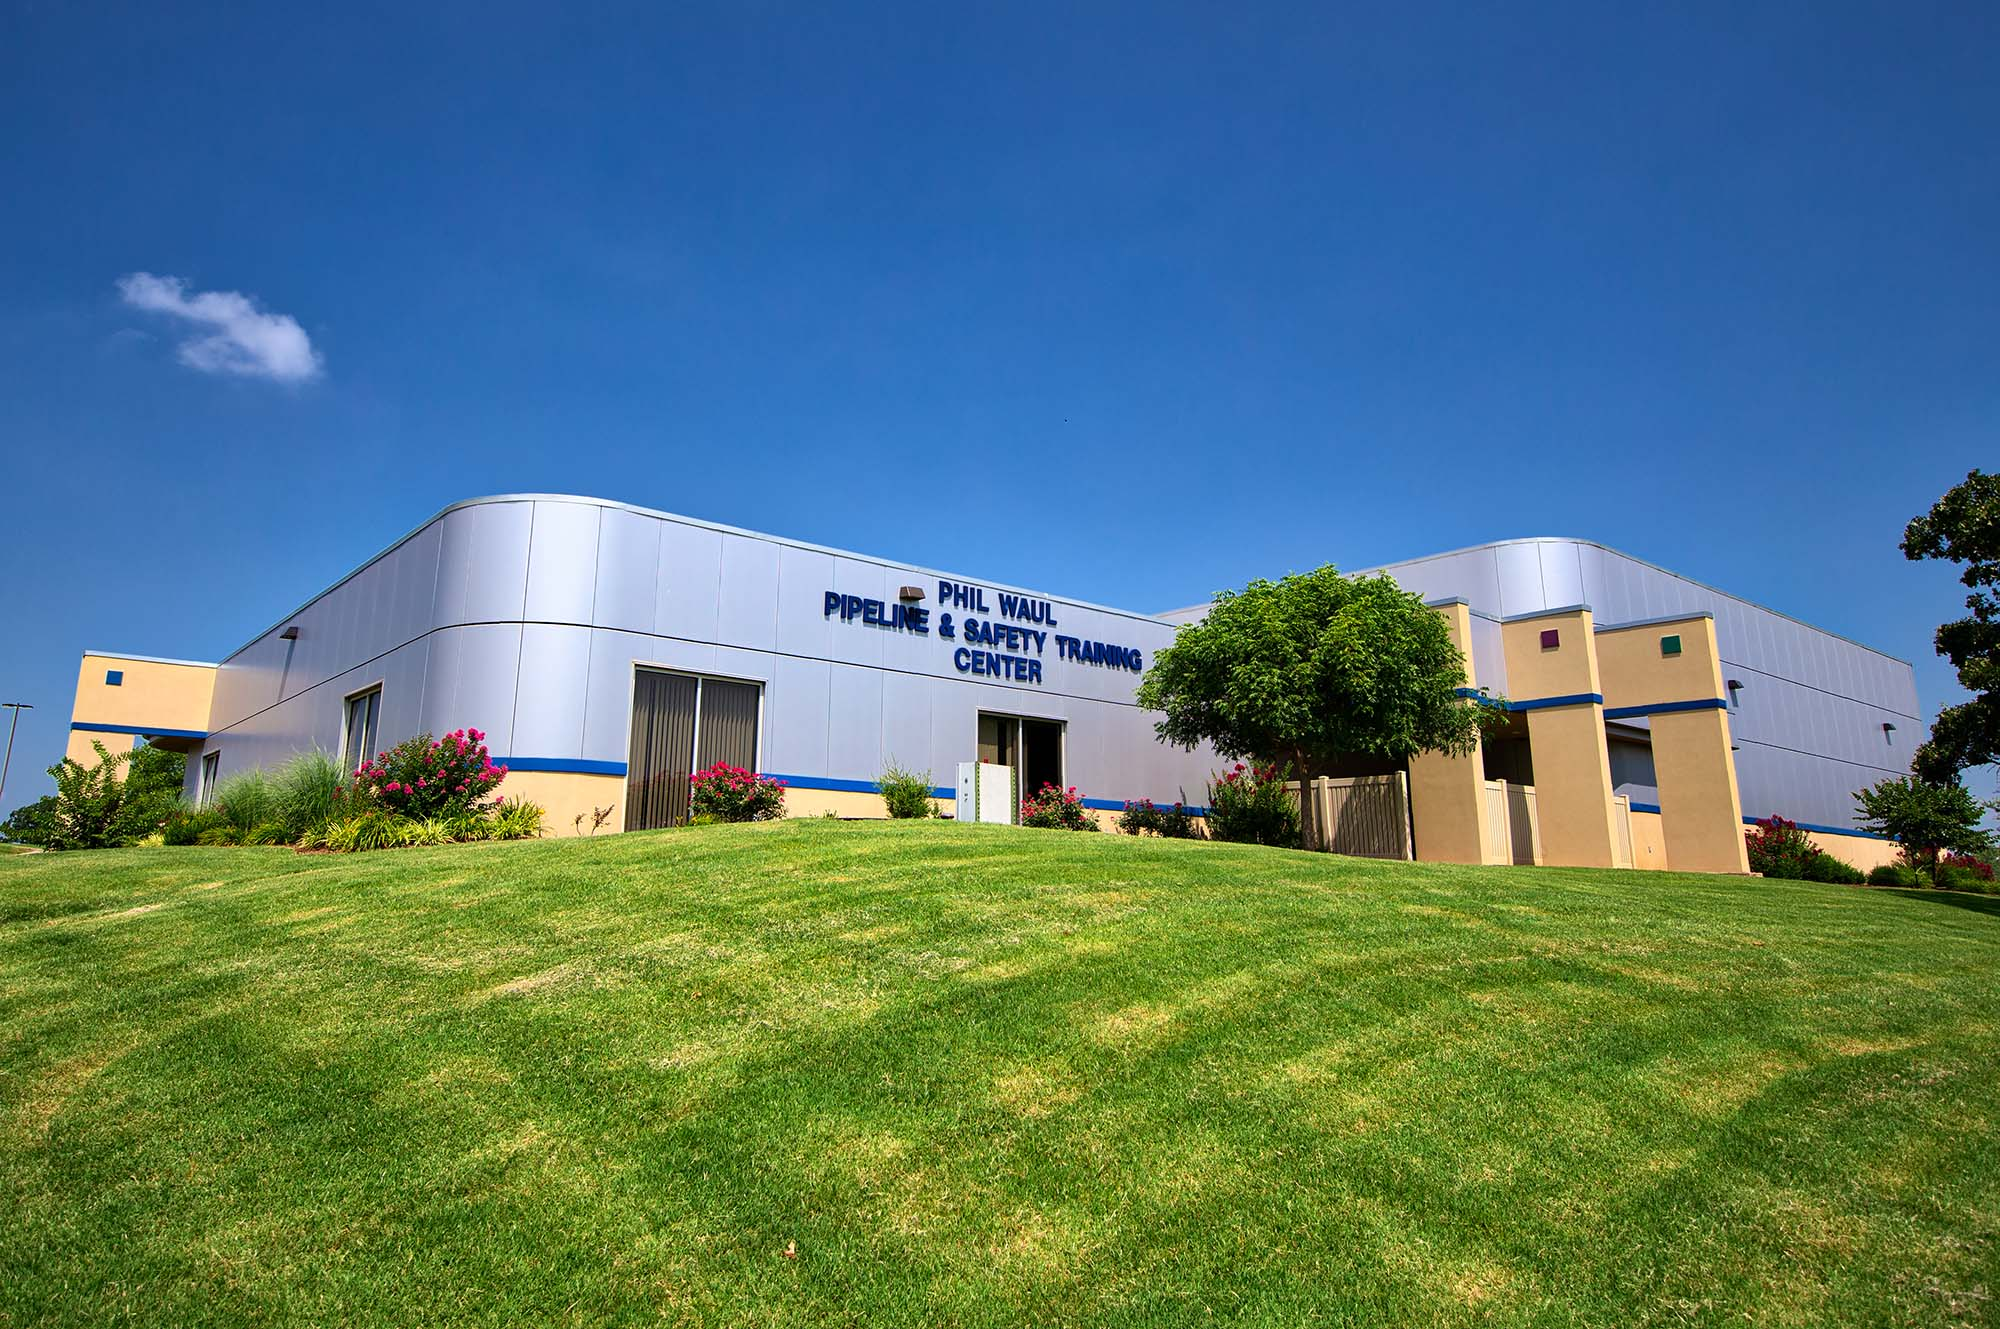 Central Techs Pipeline and Safety Center building in Drumright